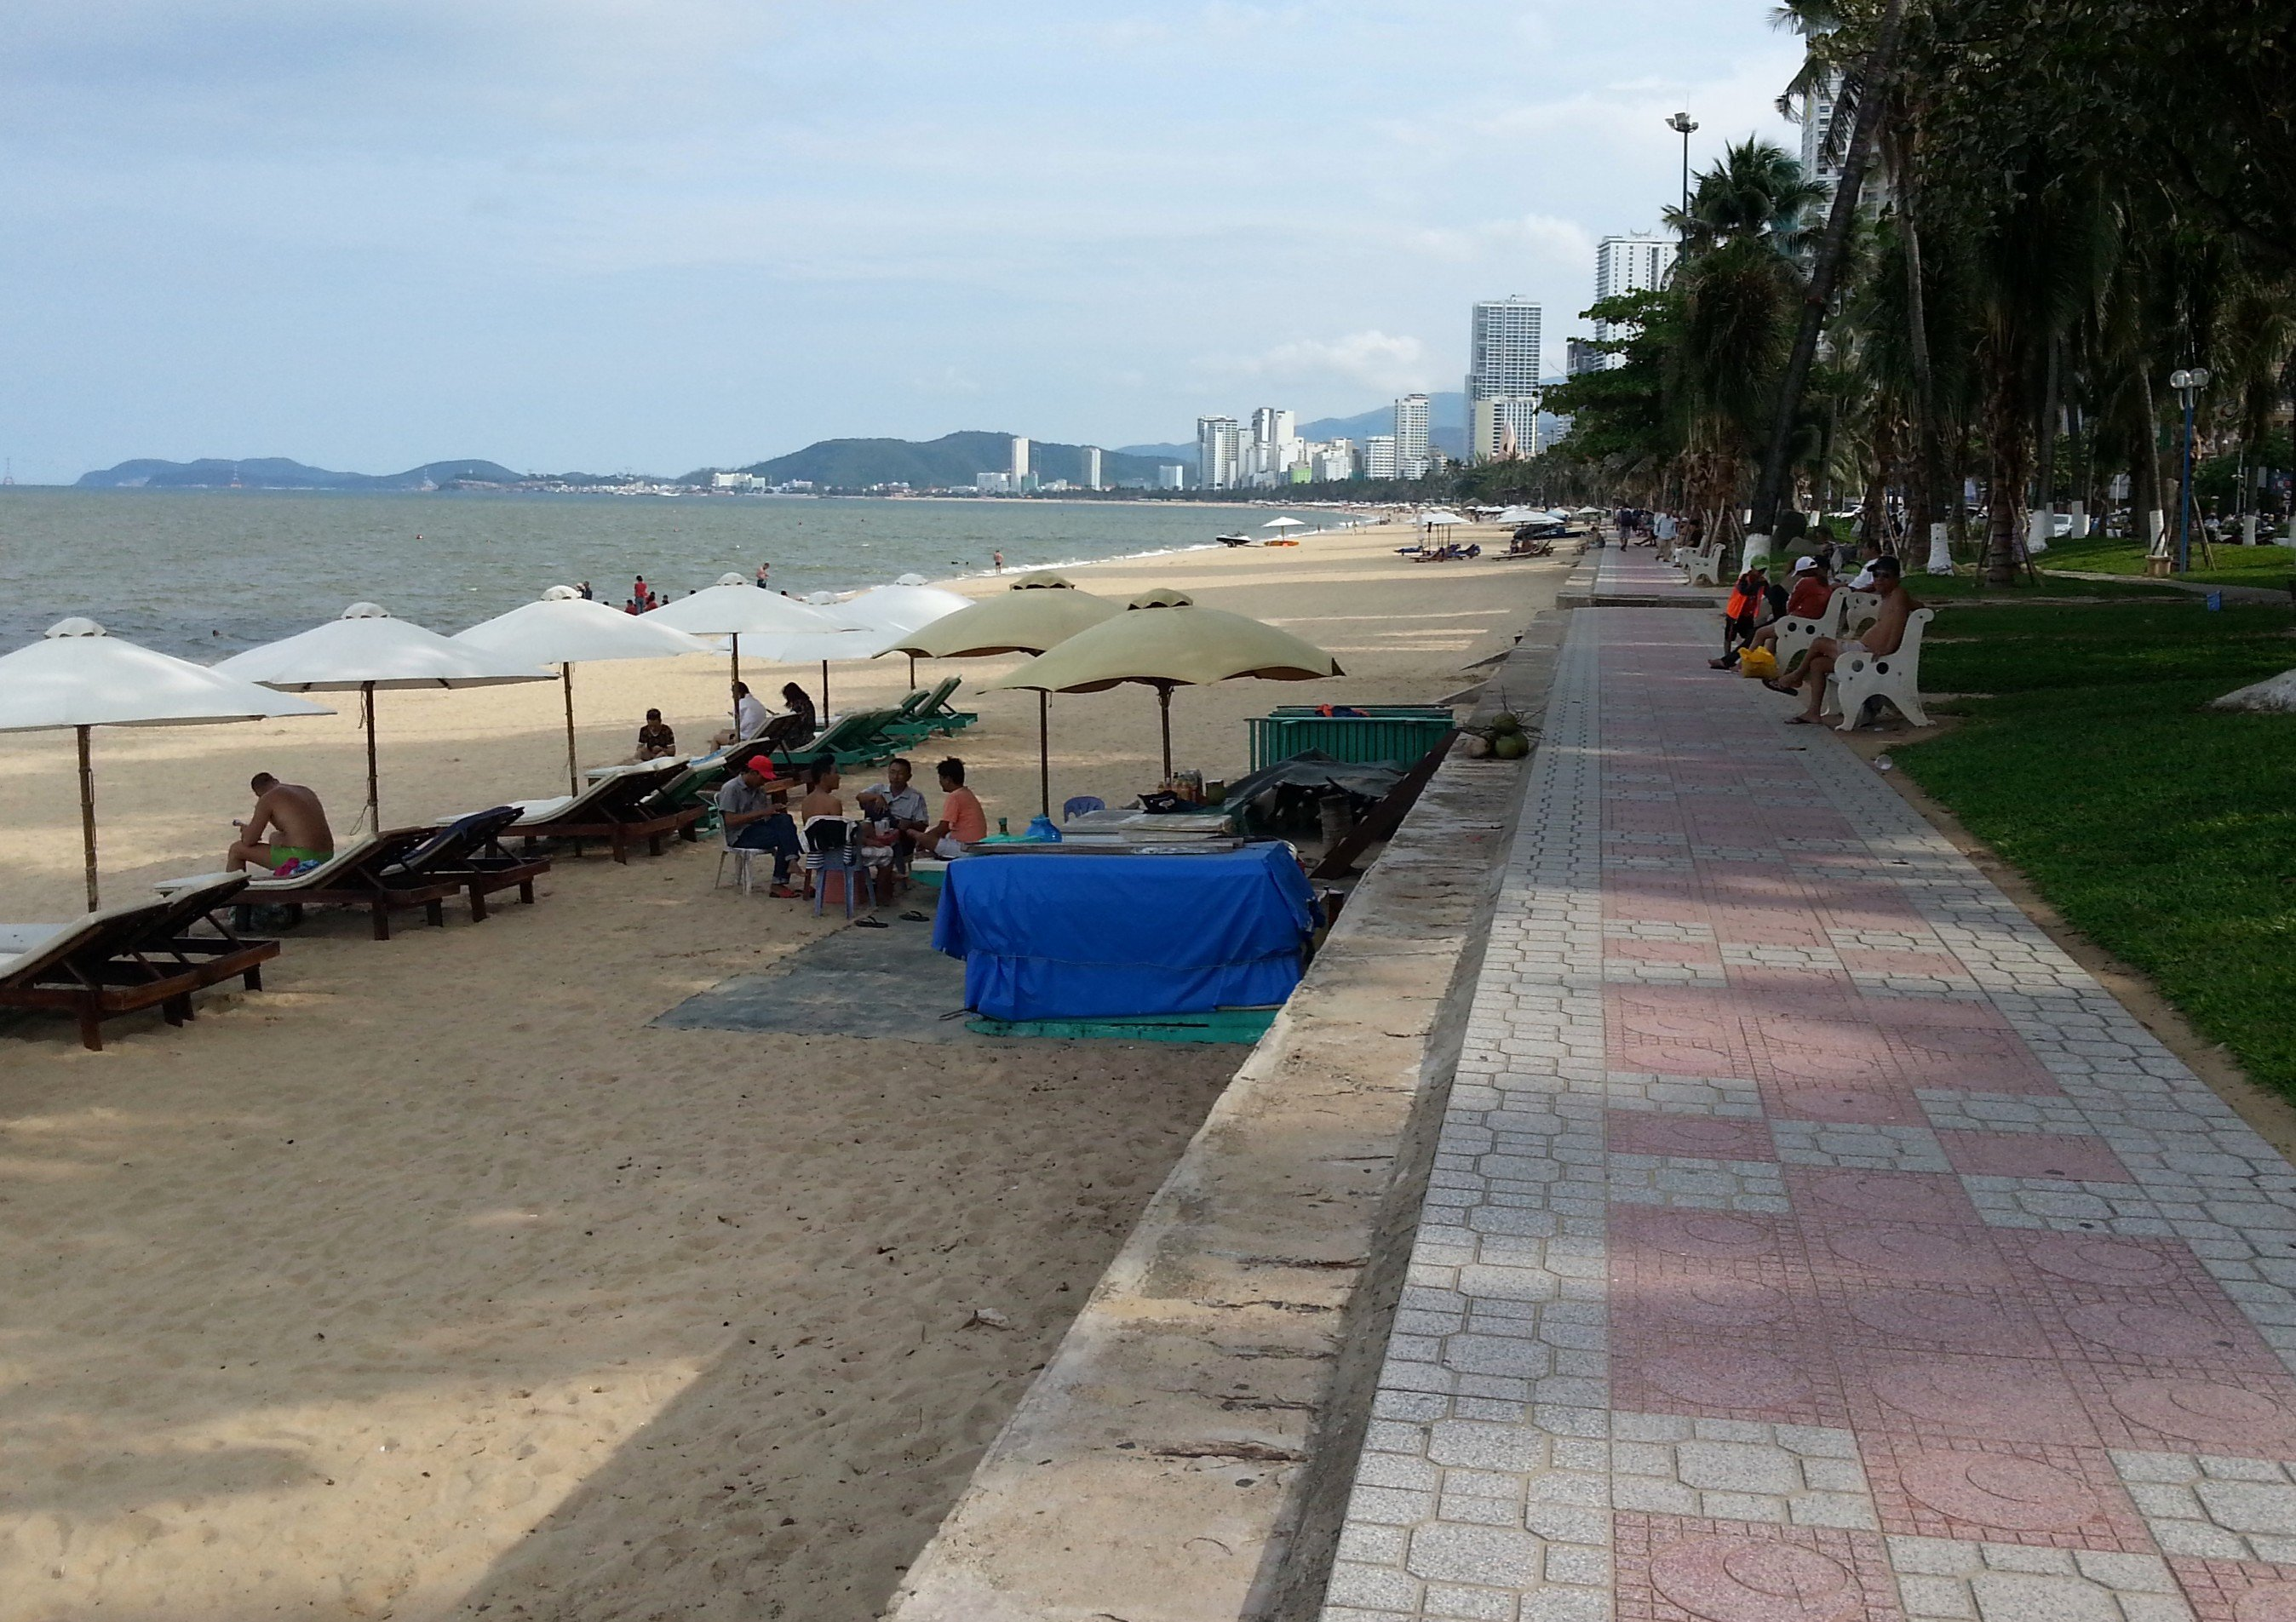 Beach front in Nha Trang